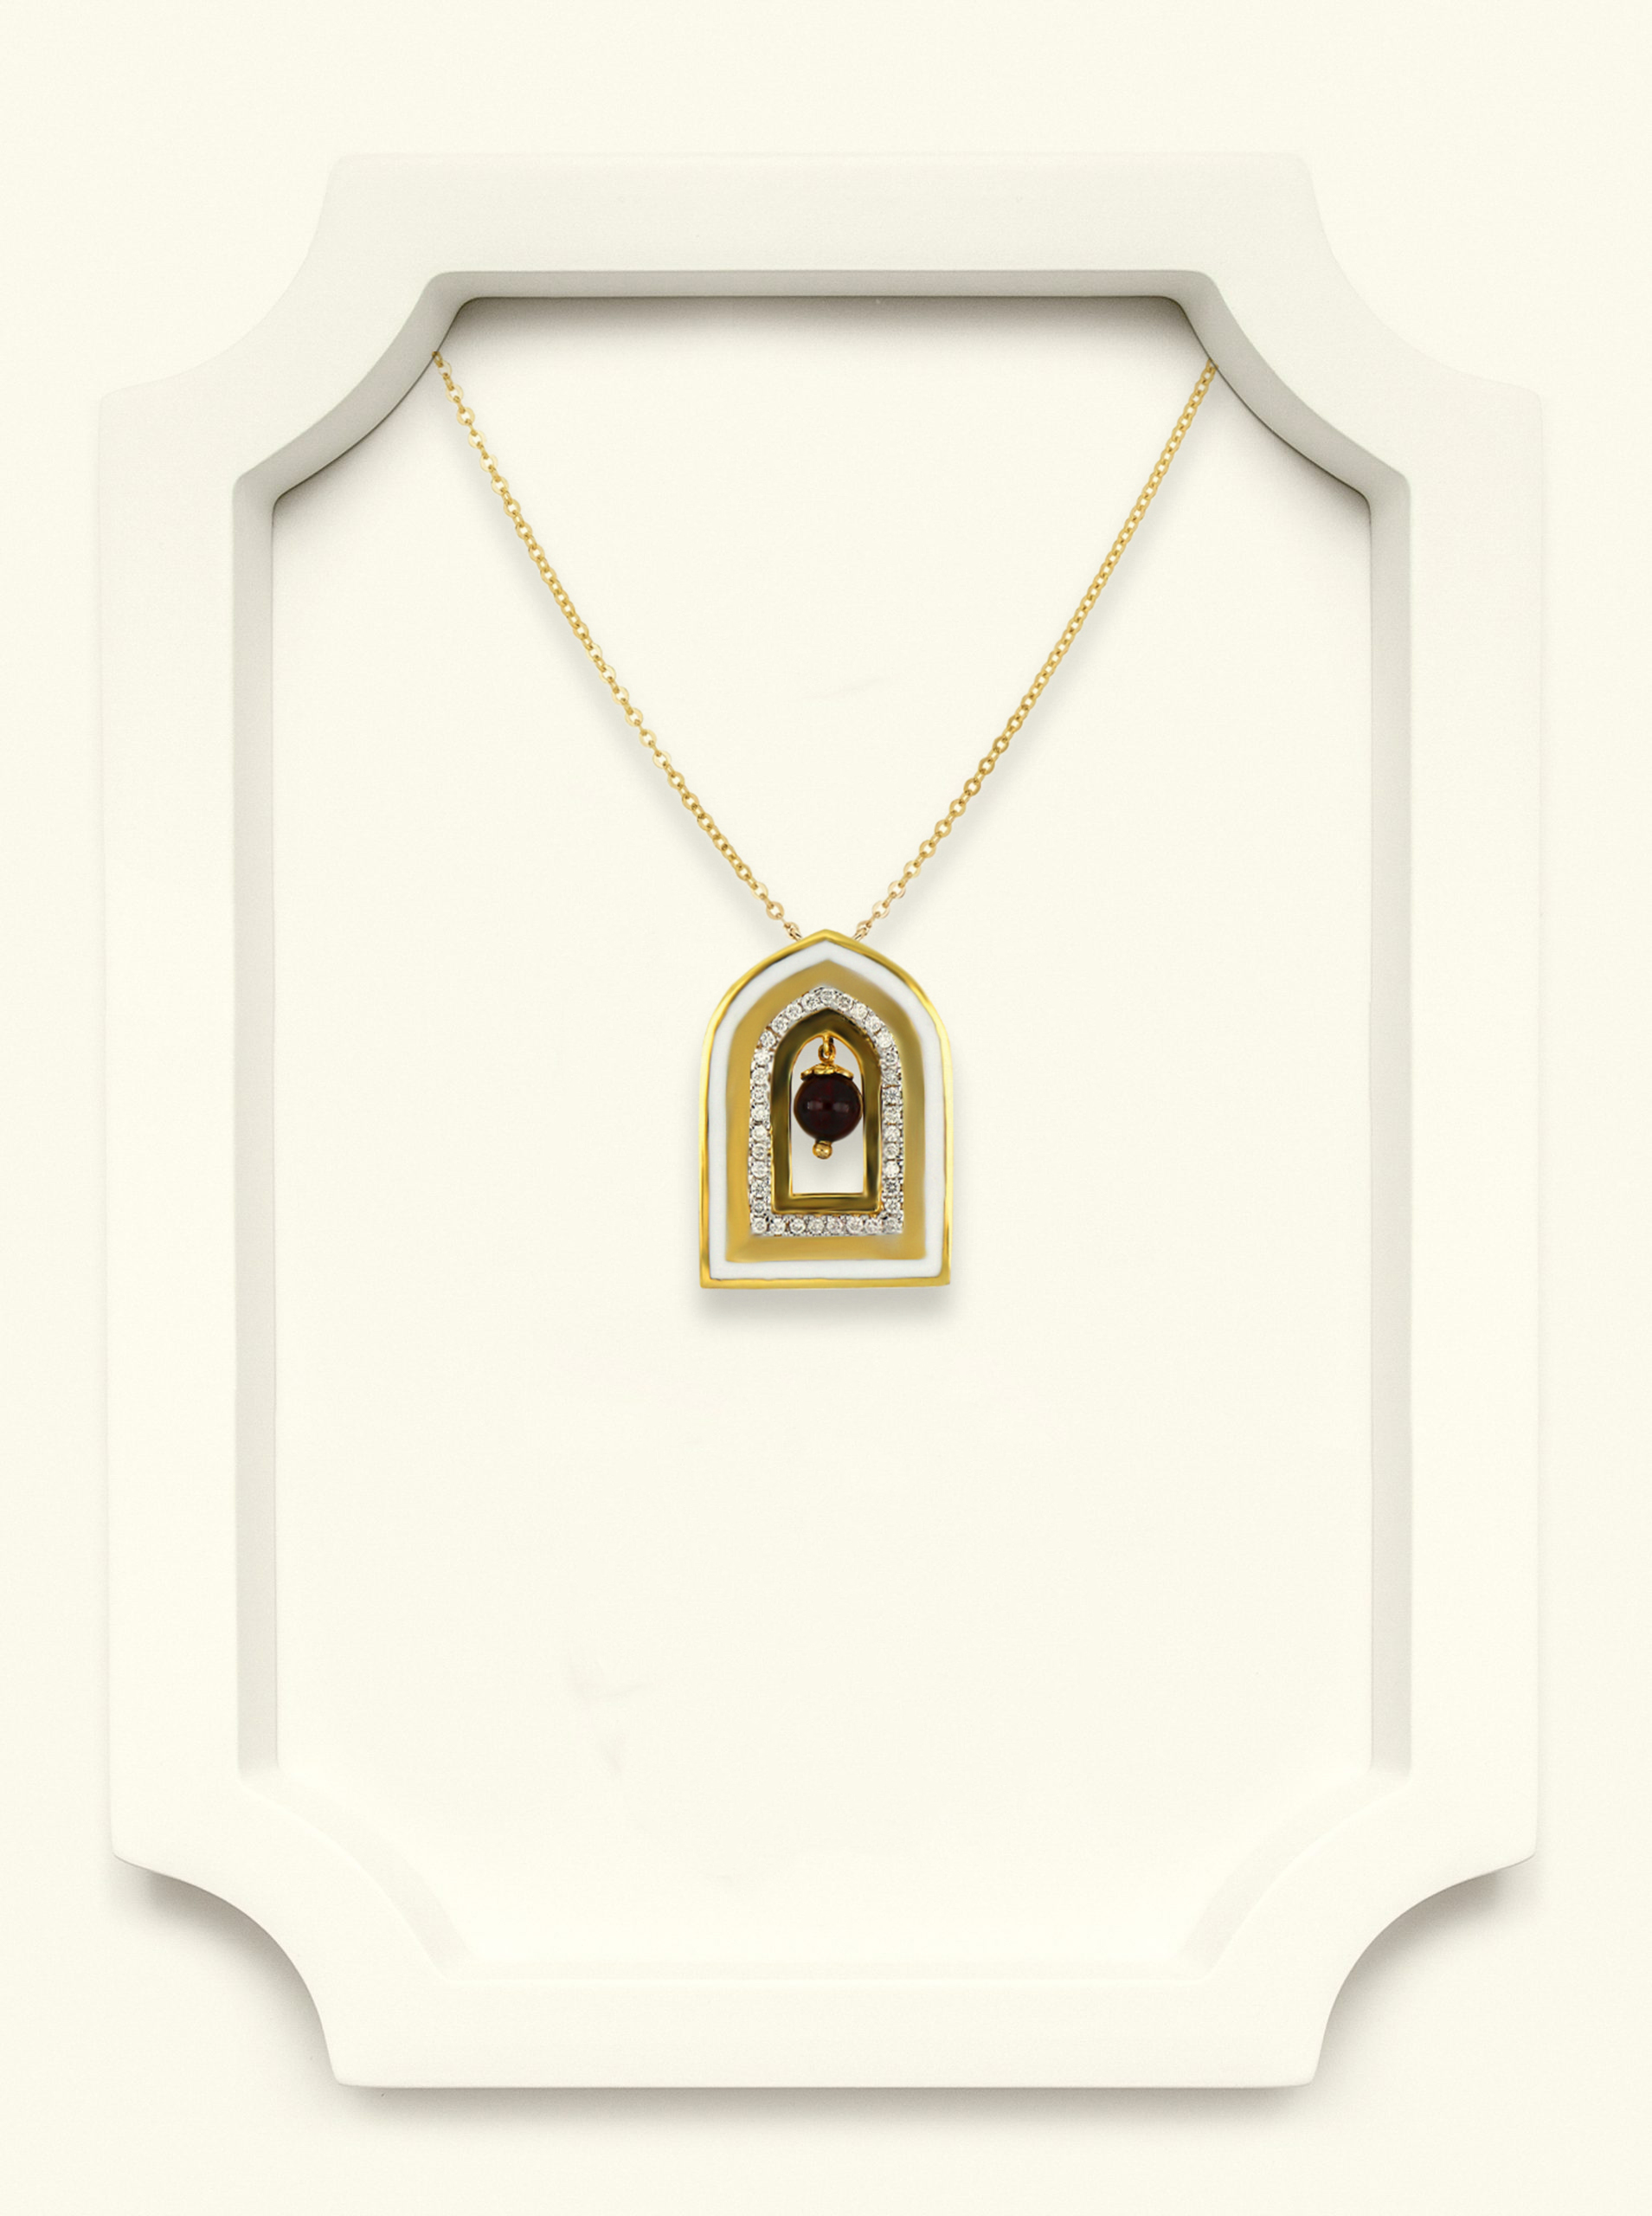 National day pendant